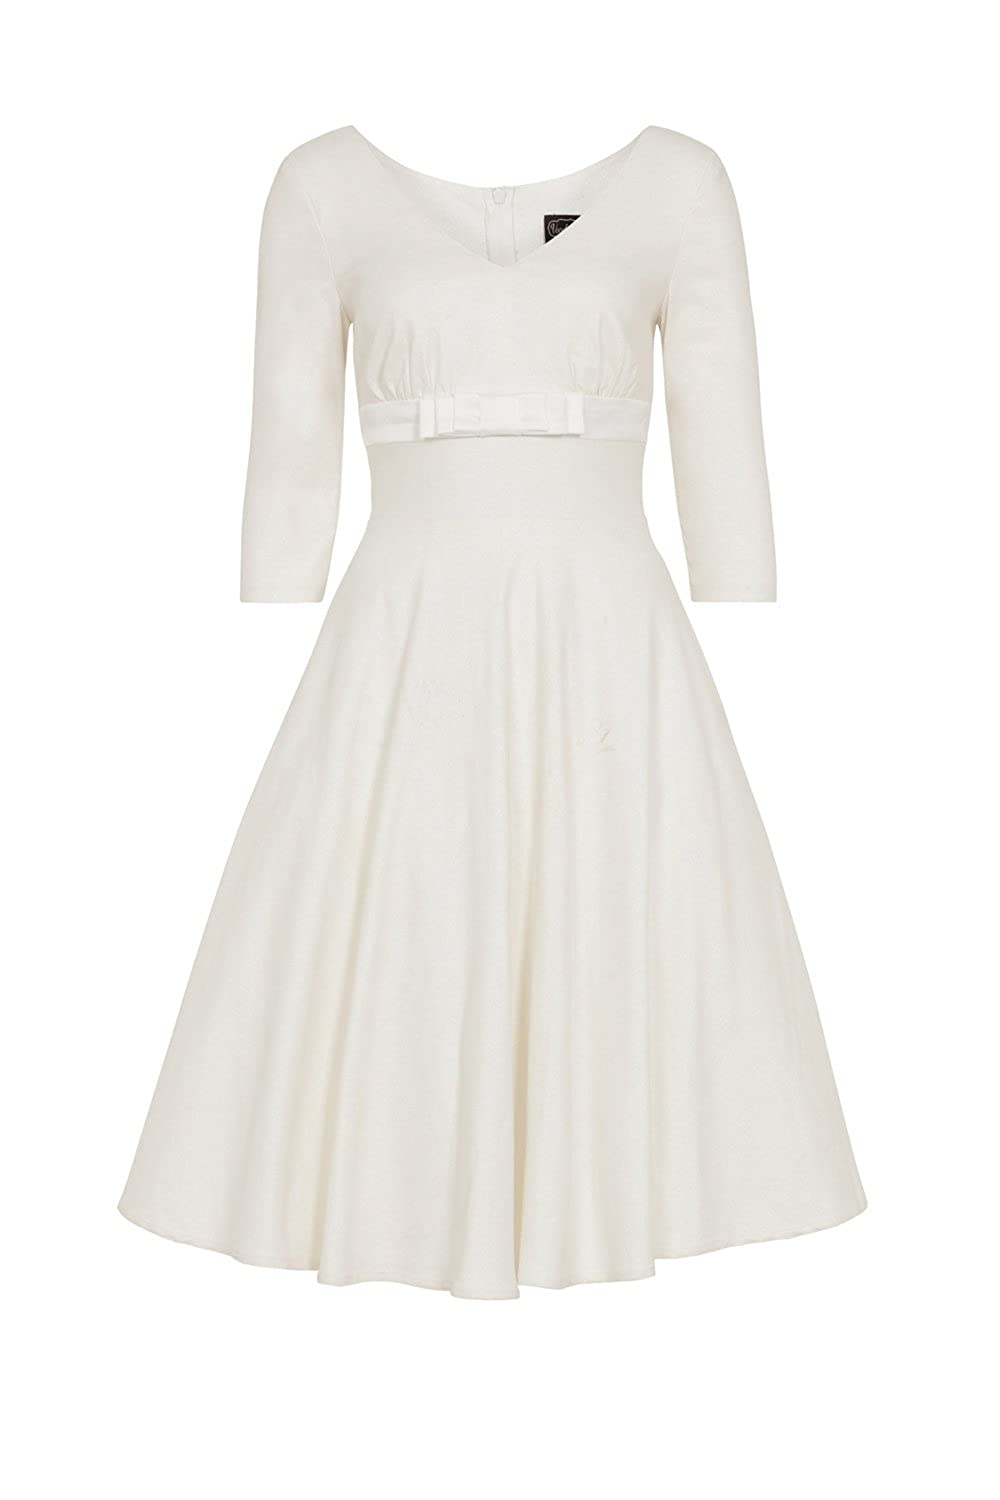 1960s Style Dresses, Clothing, Shoes UK Voodoo Vixen Dorothy Bridal Plus Size Dress �62.50 AT vintagedancer.com